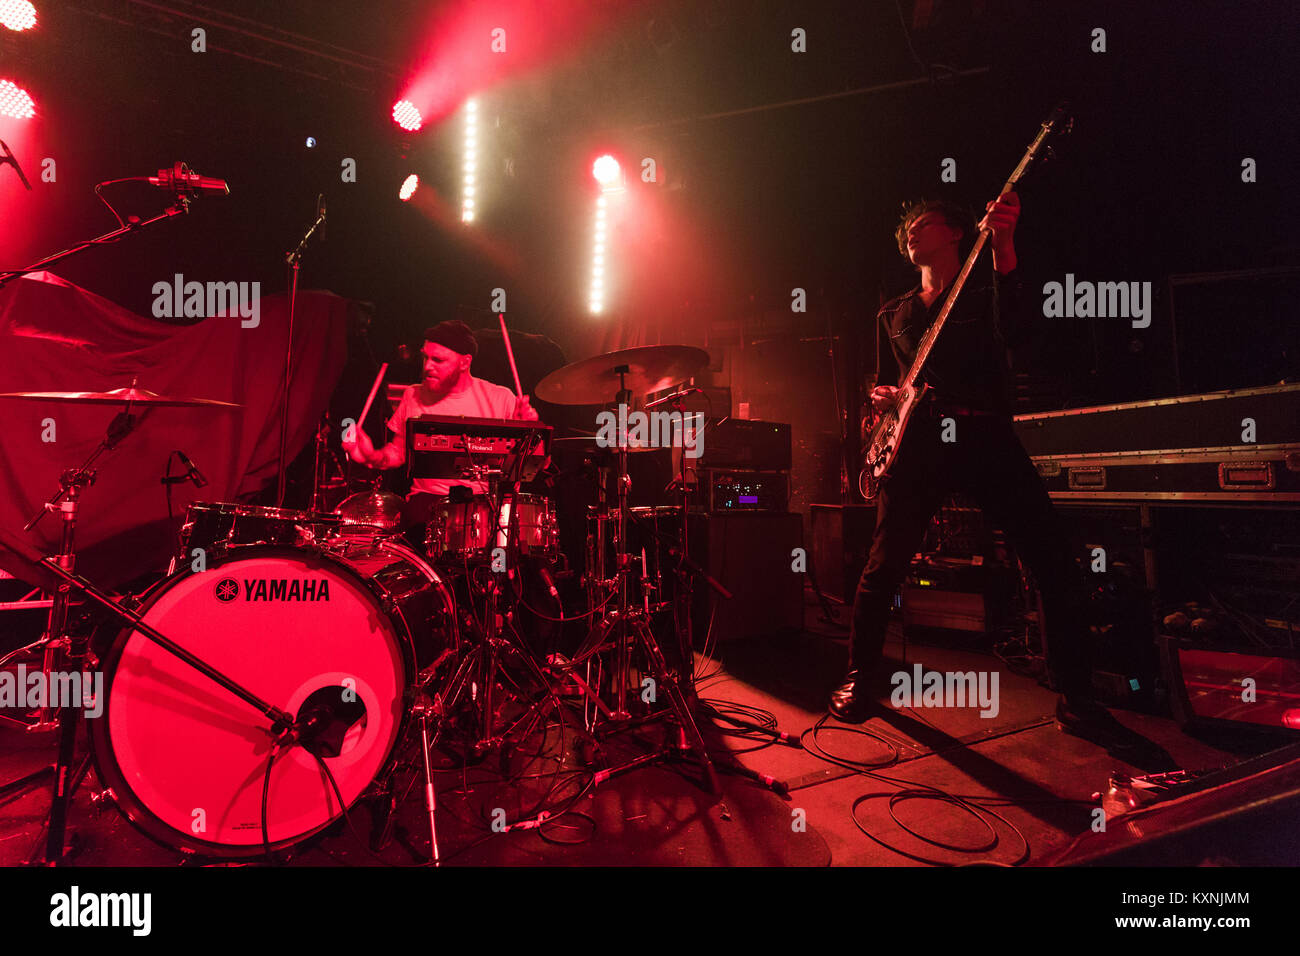 Cambridge, UK. 10th Jan, 2018. Yonaka perform live at the Cambridge Junction supporting The Cribs. Credit: Richard Stock Photo